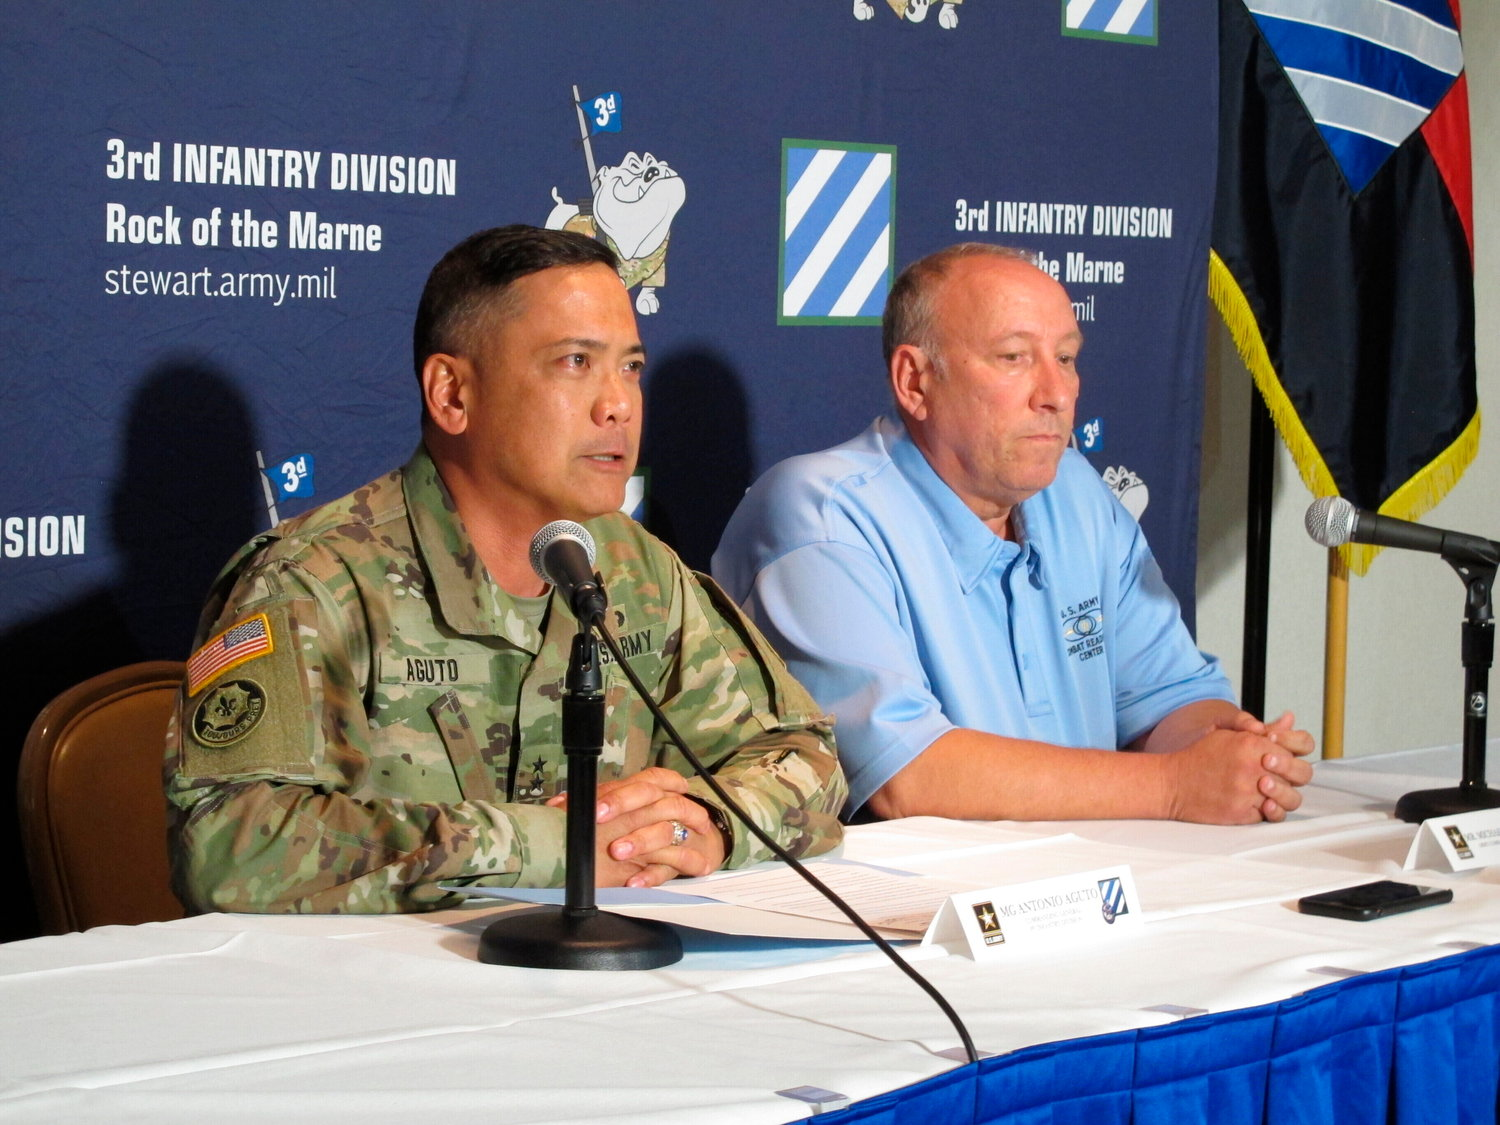 Army Maj. Gen. Antonio Aguto, left, and Army accident investigator Michael Barksdale hold a news conference, Monday, Oct. 21, 2019, at Fort Stewart, Georgia, about a training accident that killed three soldiers and injured three others.